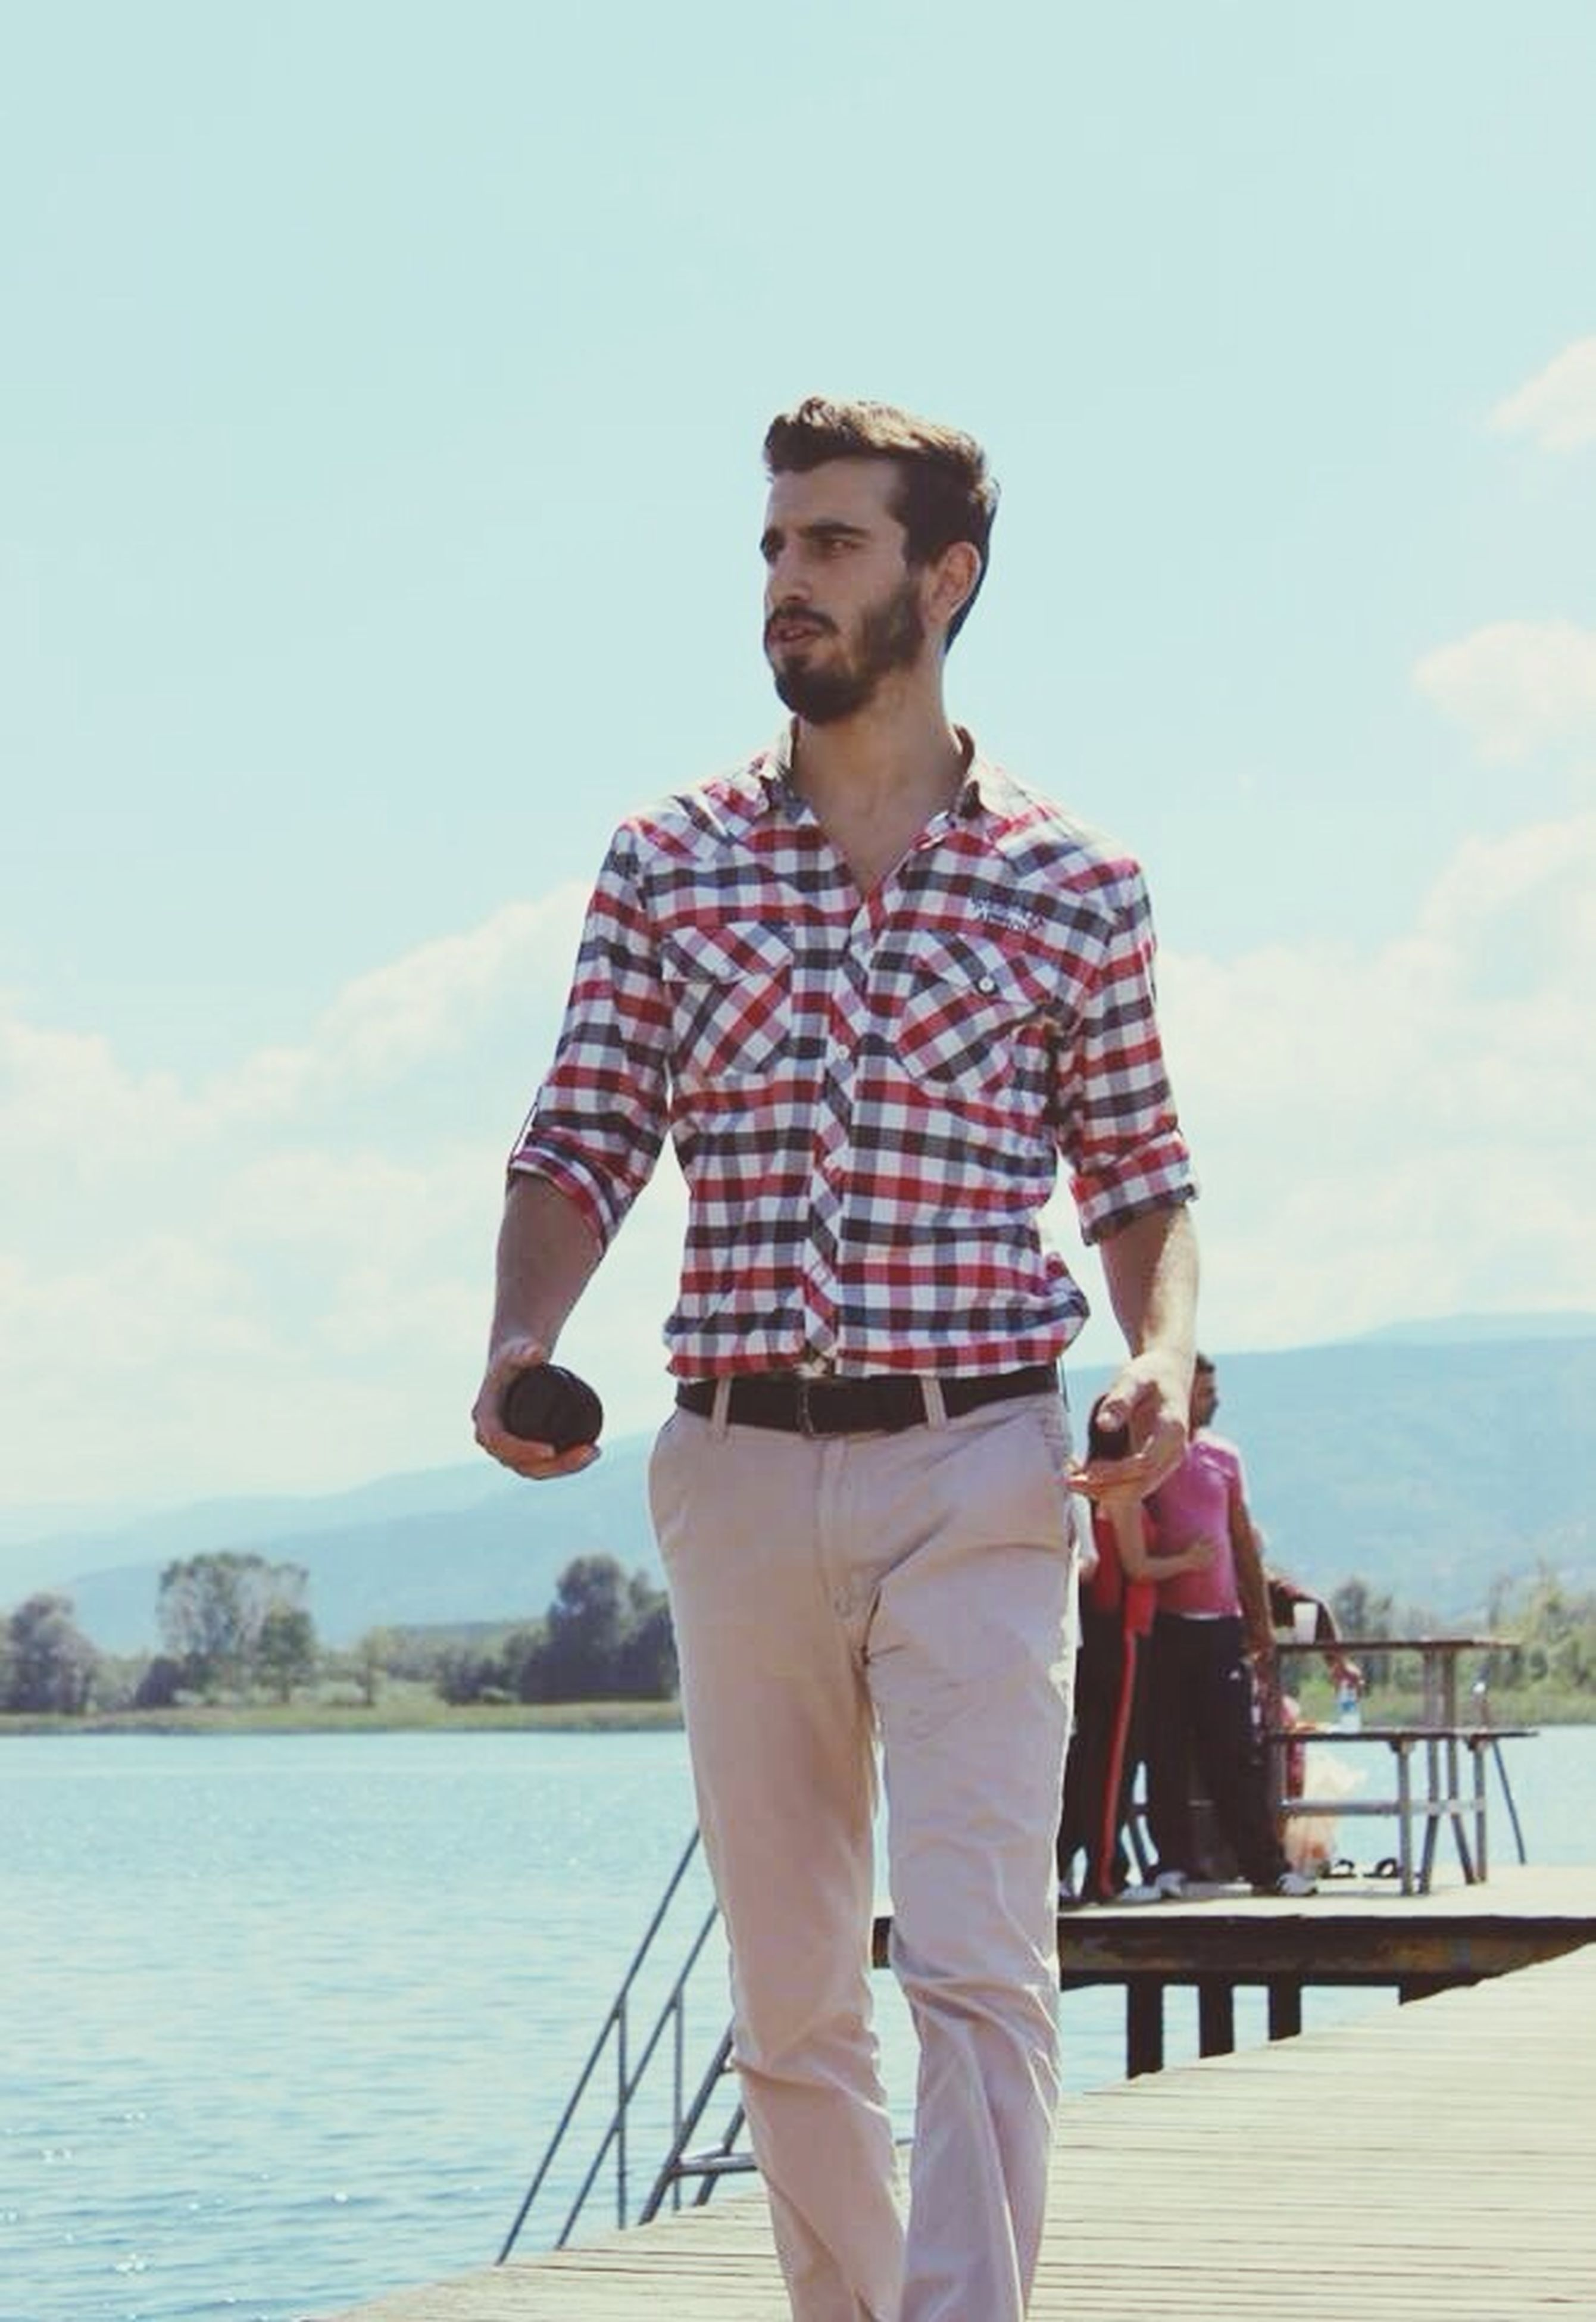 water, lifestyles, casual clothing, person, sea, standing, sky, leisure activity, three quarter length, young adult, looking at camera, front view, portrait, railing, young men, smiling, sunglasses, built structure